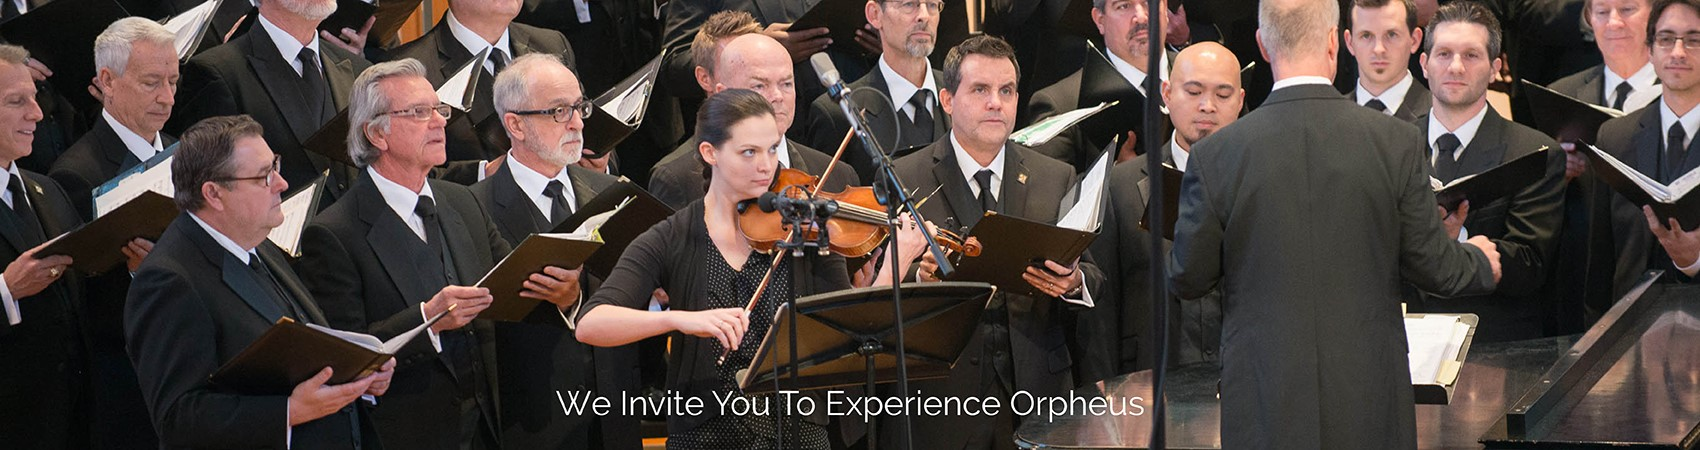 We Invite You To Experience Orpheus